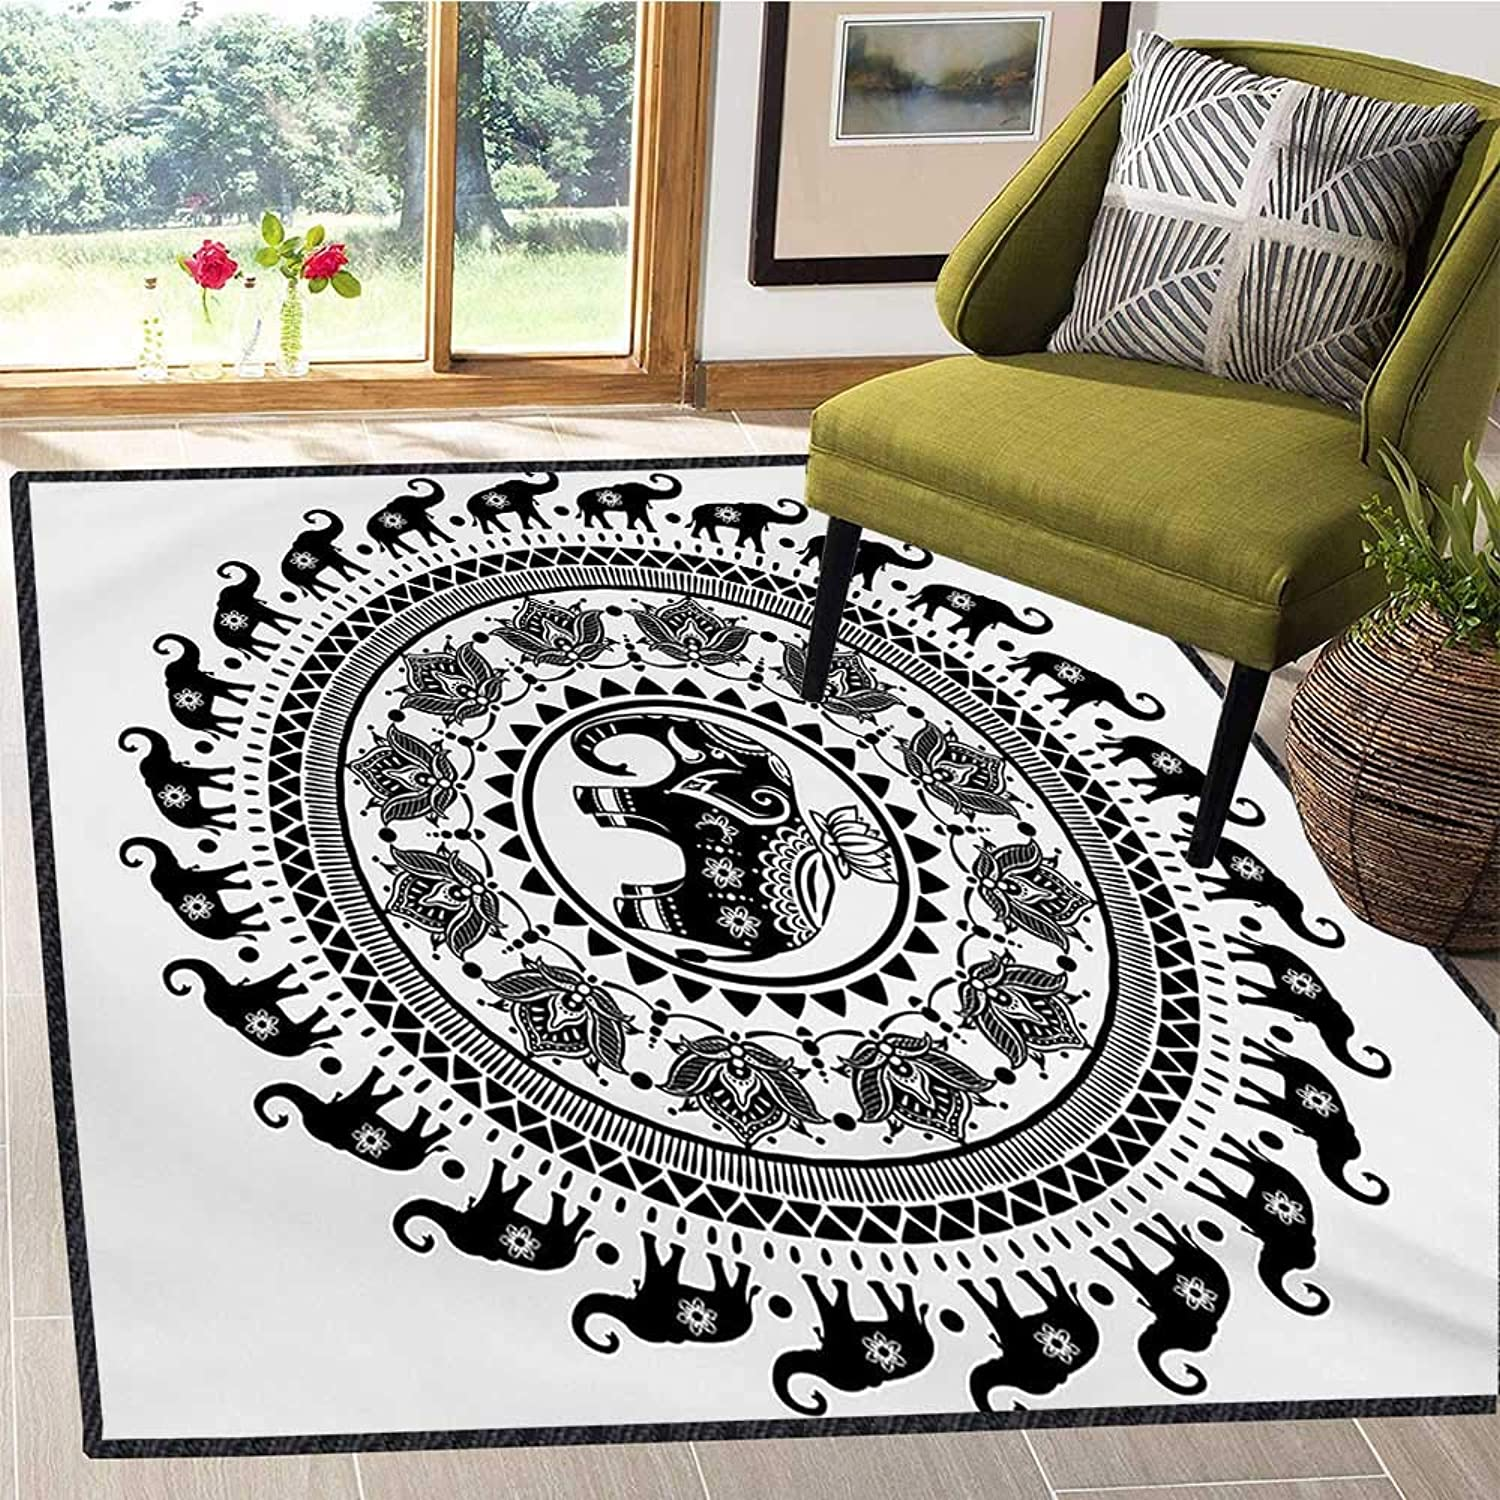 Elephant Mandala, Door Mats for Inside, Seven Royal Symbols and a Guardian of Temples Spirit Animal Circle, Door Mats for Inside Non Slip Backing 4x6 Ft Black and White